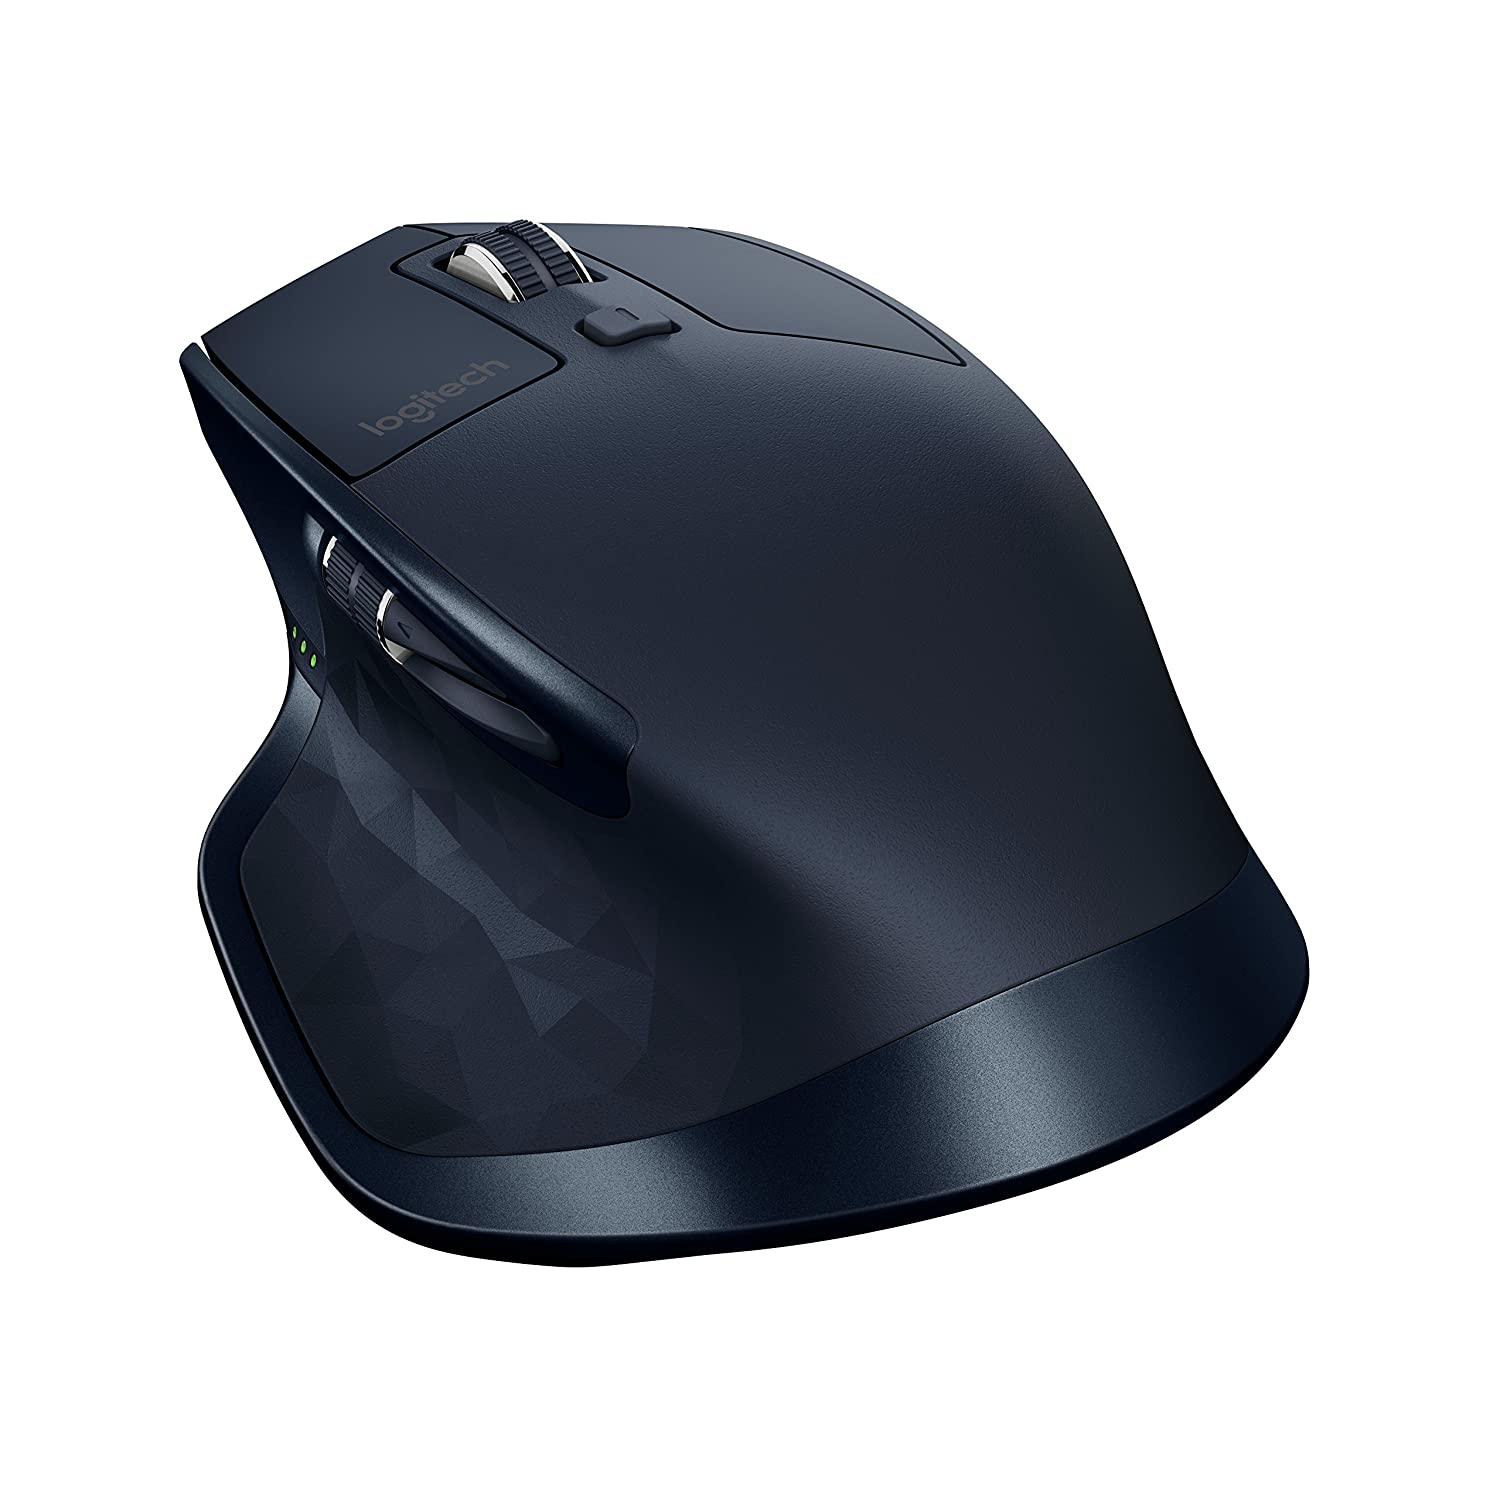 Wireless Mouse,Amazon.com